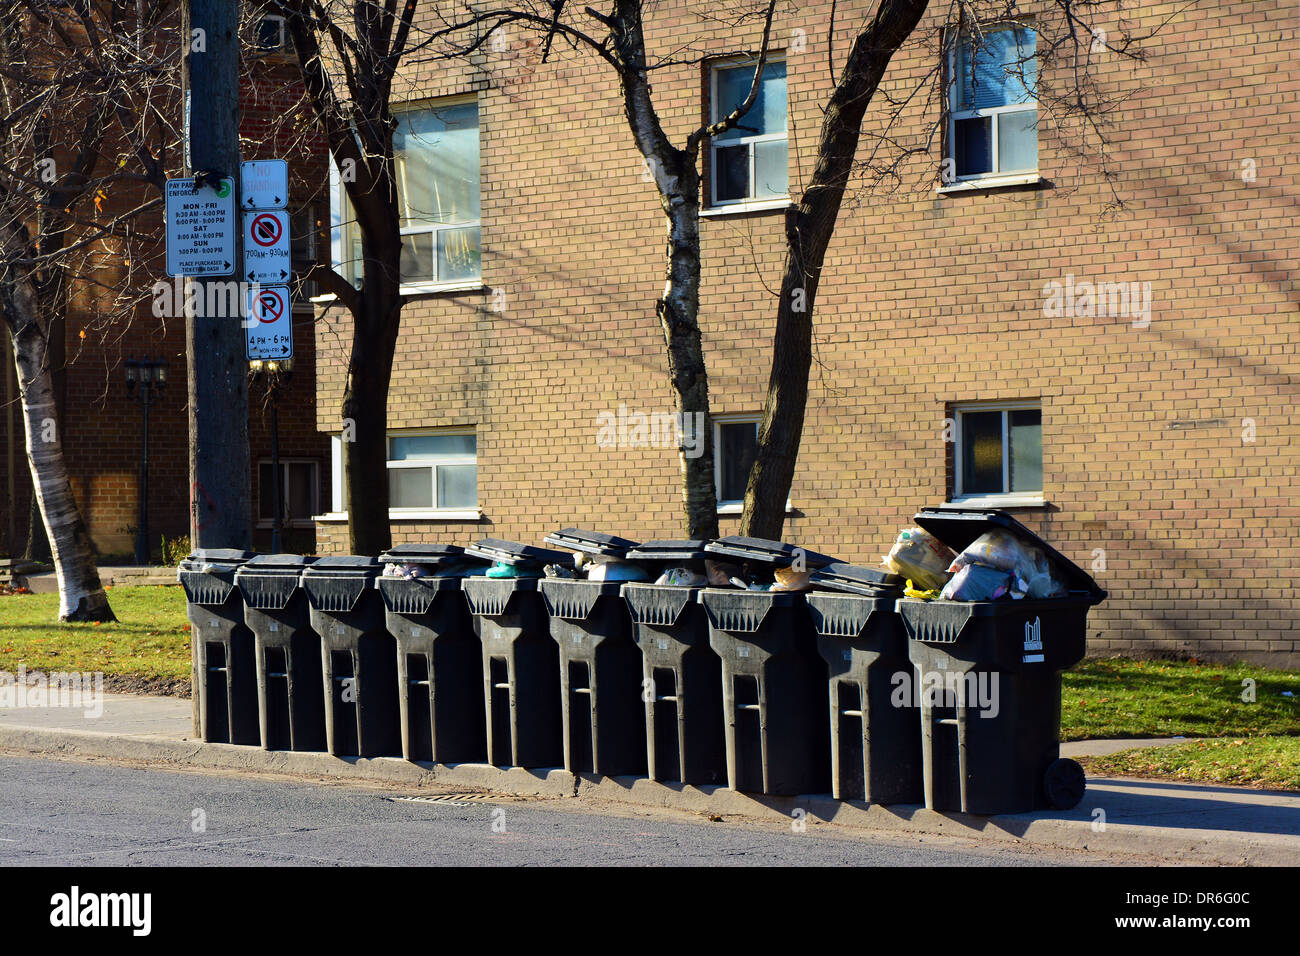 Garbage containers ready for pickup in Toronto, Canada - Stock Image